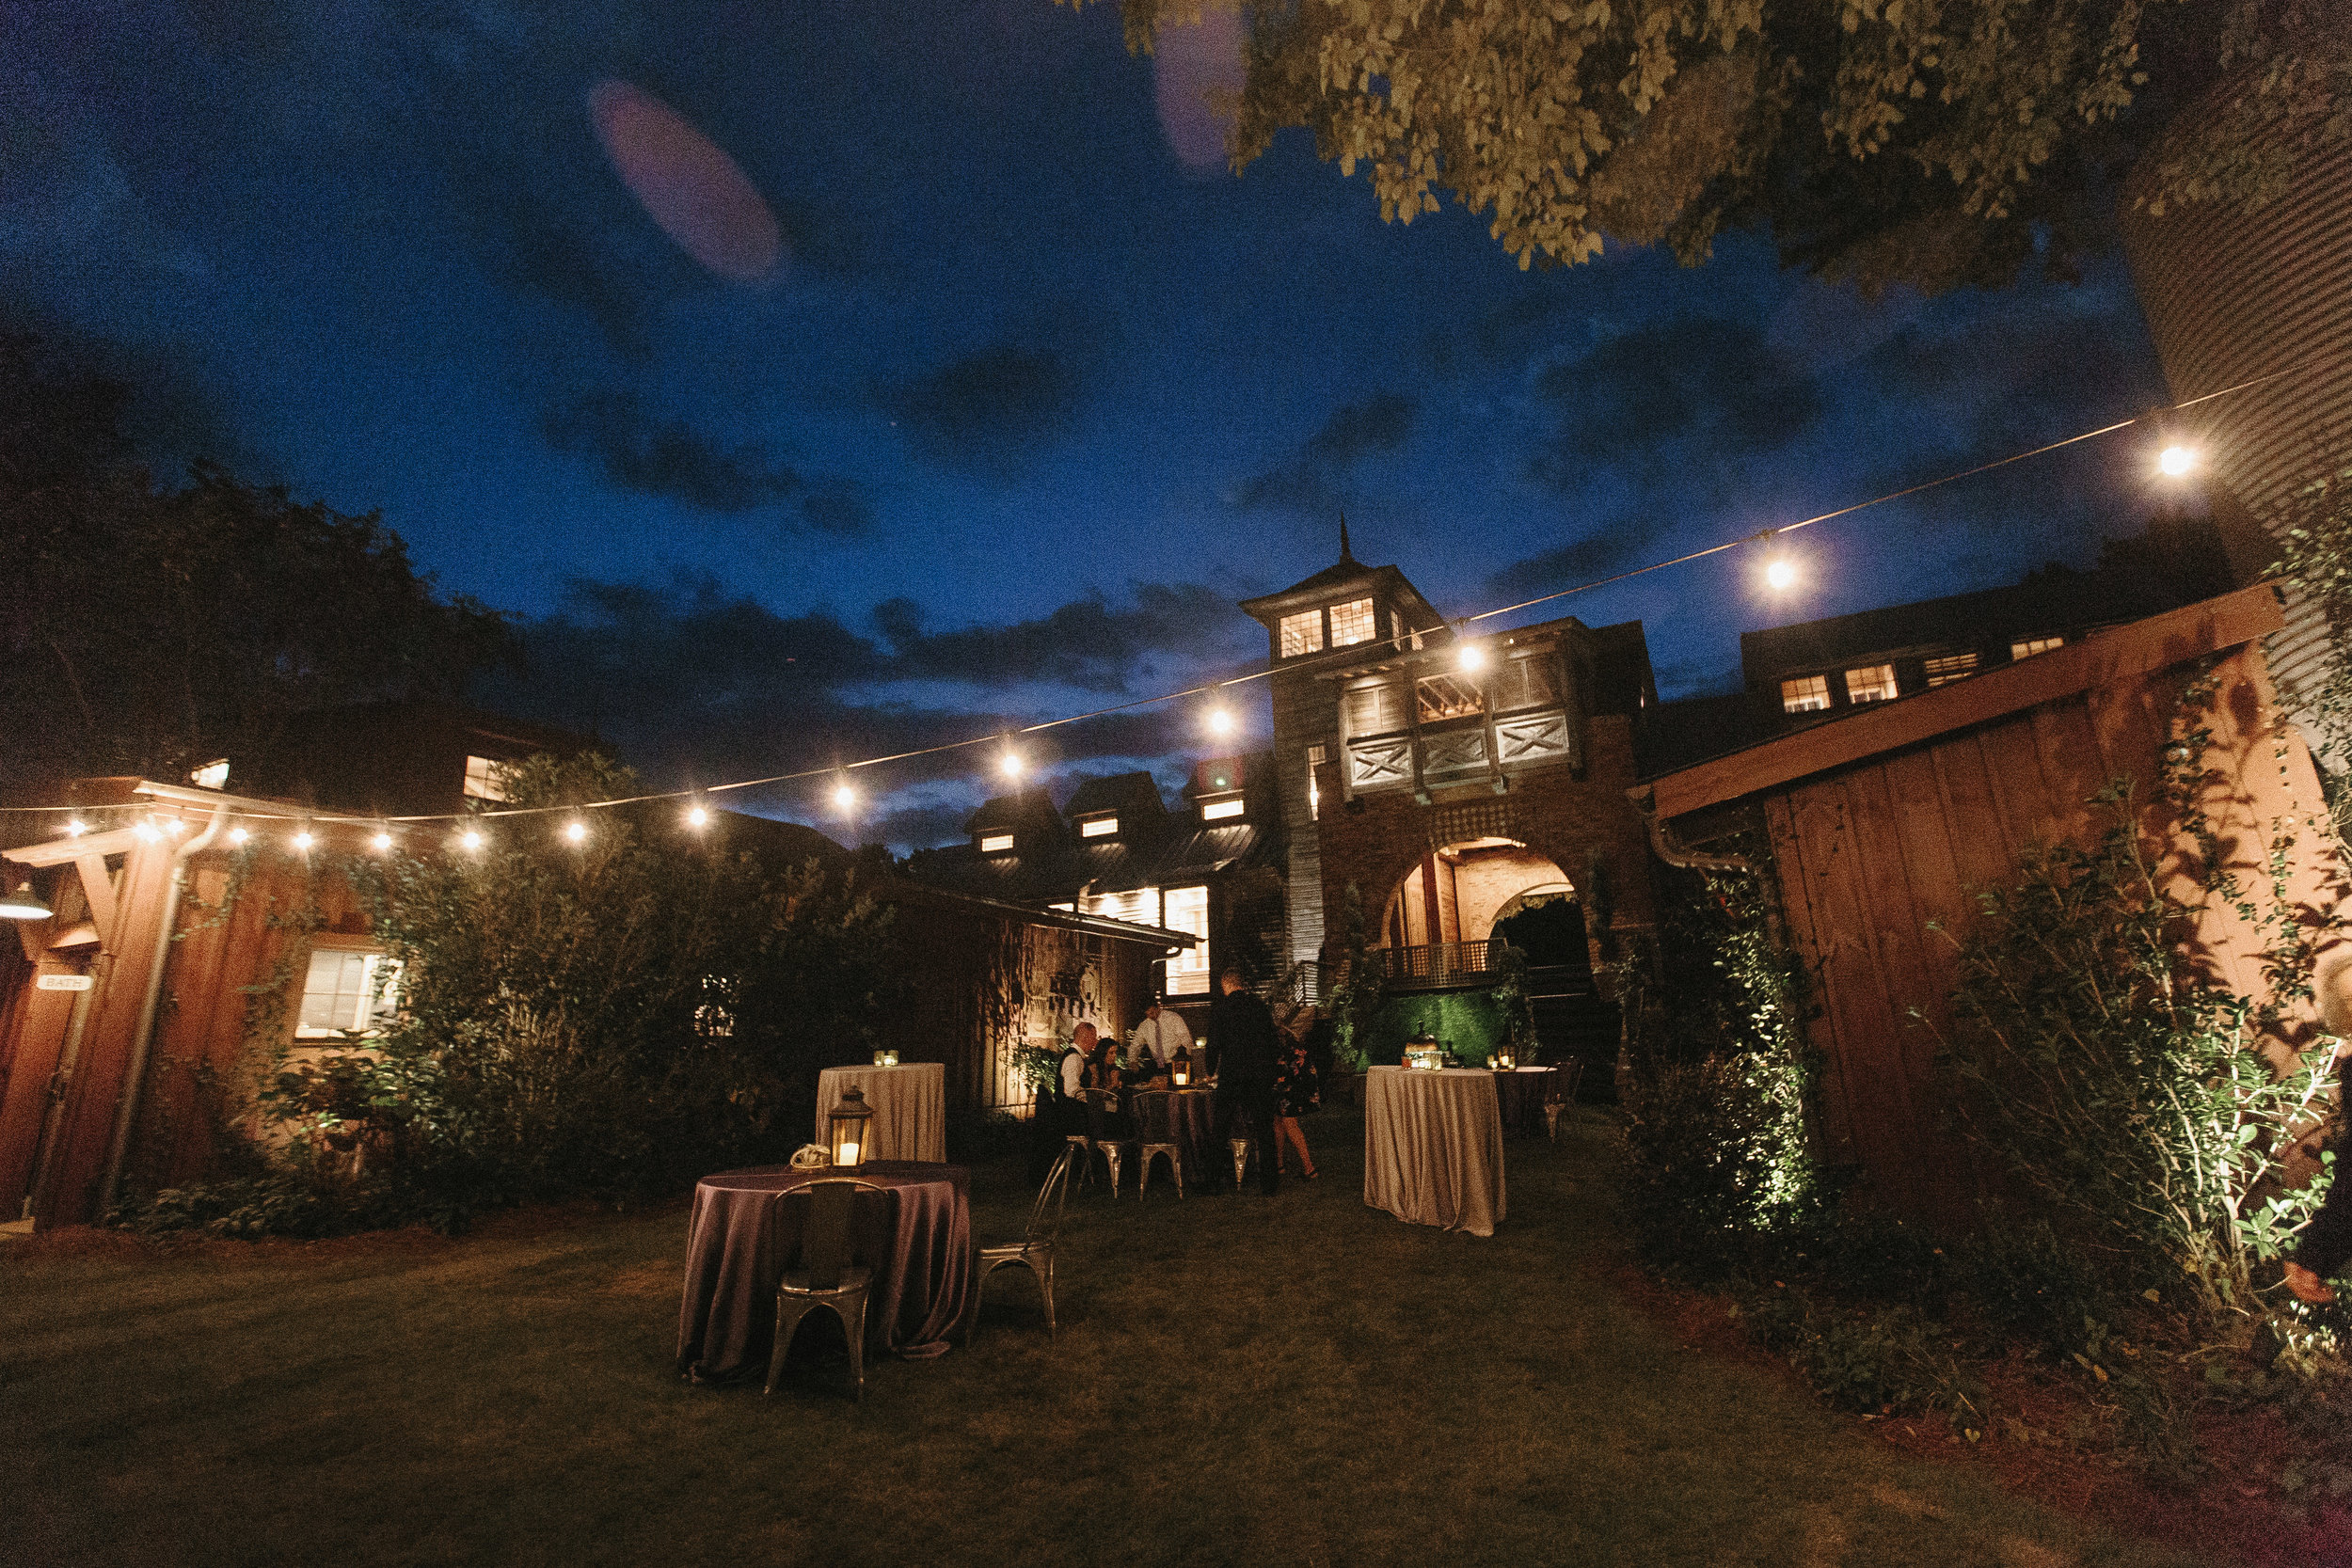 cherry_hollow_farms_industrial_unique_venue_georgia_serenbe_wedding_boho_midsummer_nights_dream_river_west_3172.jpg